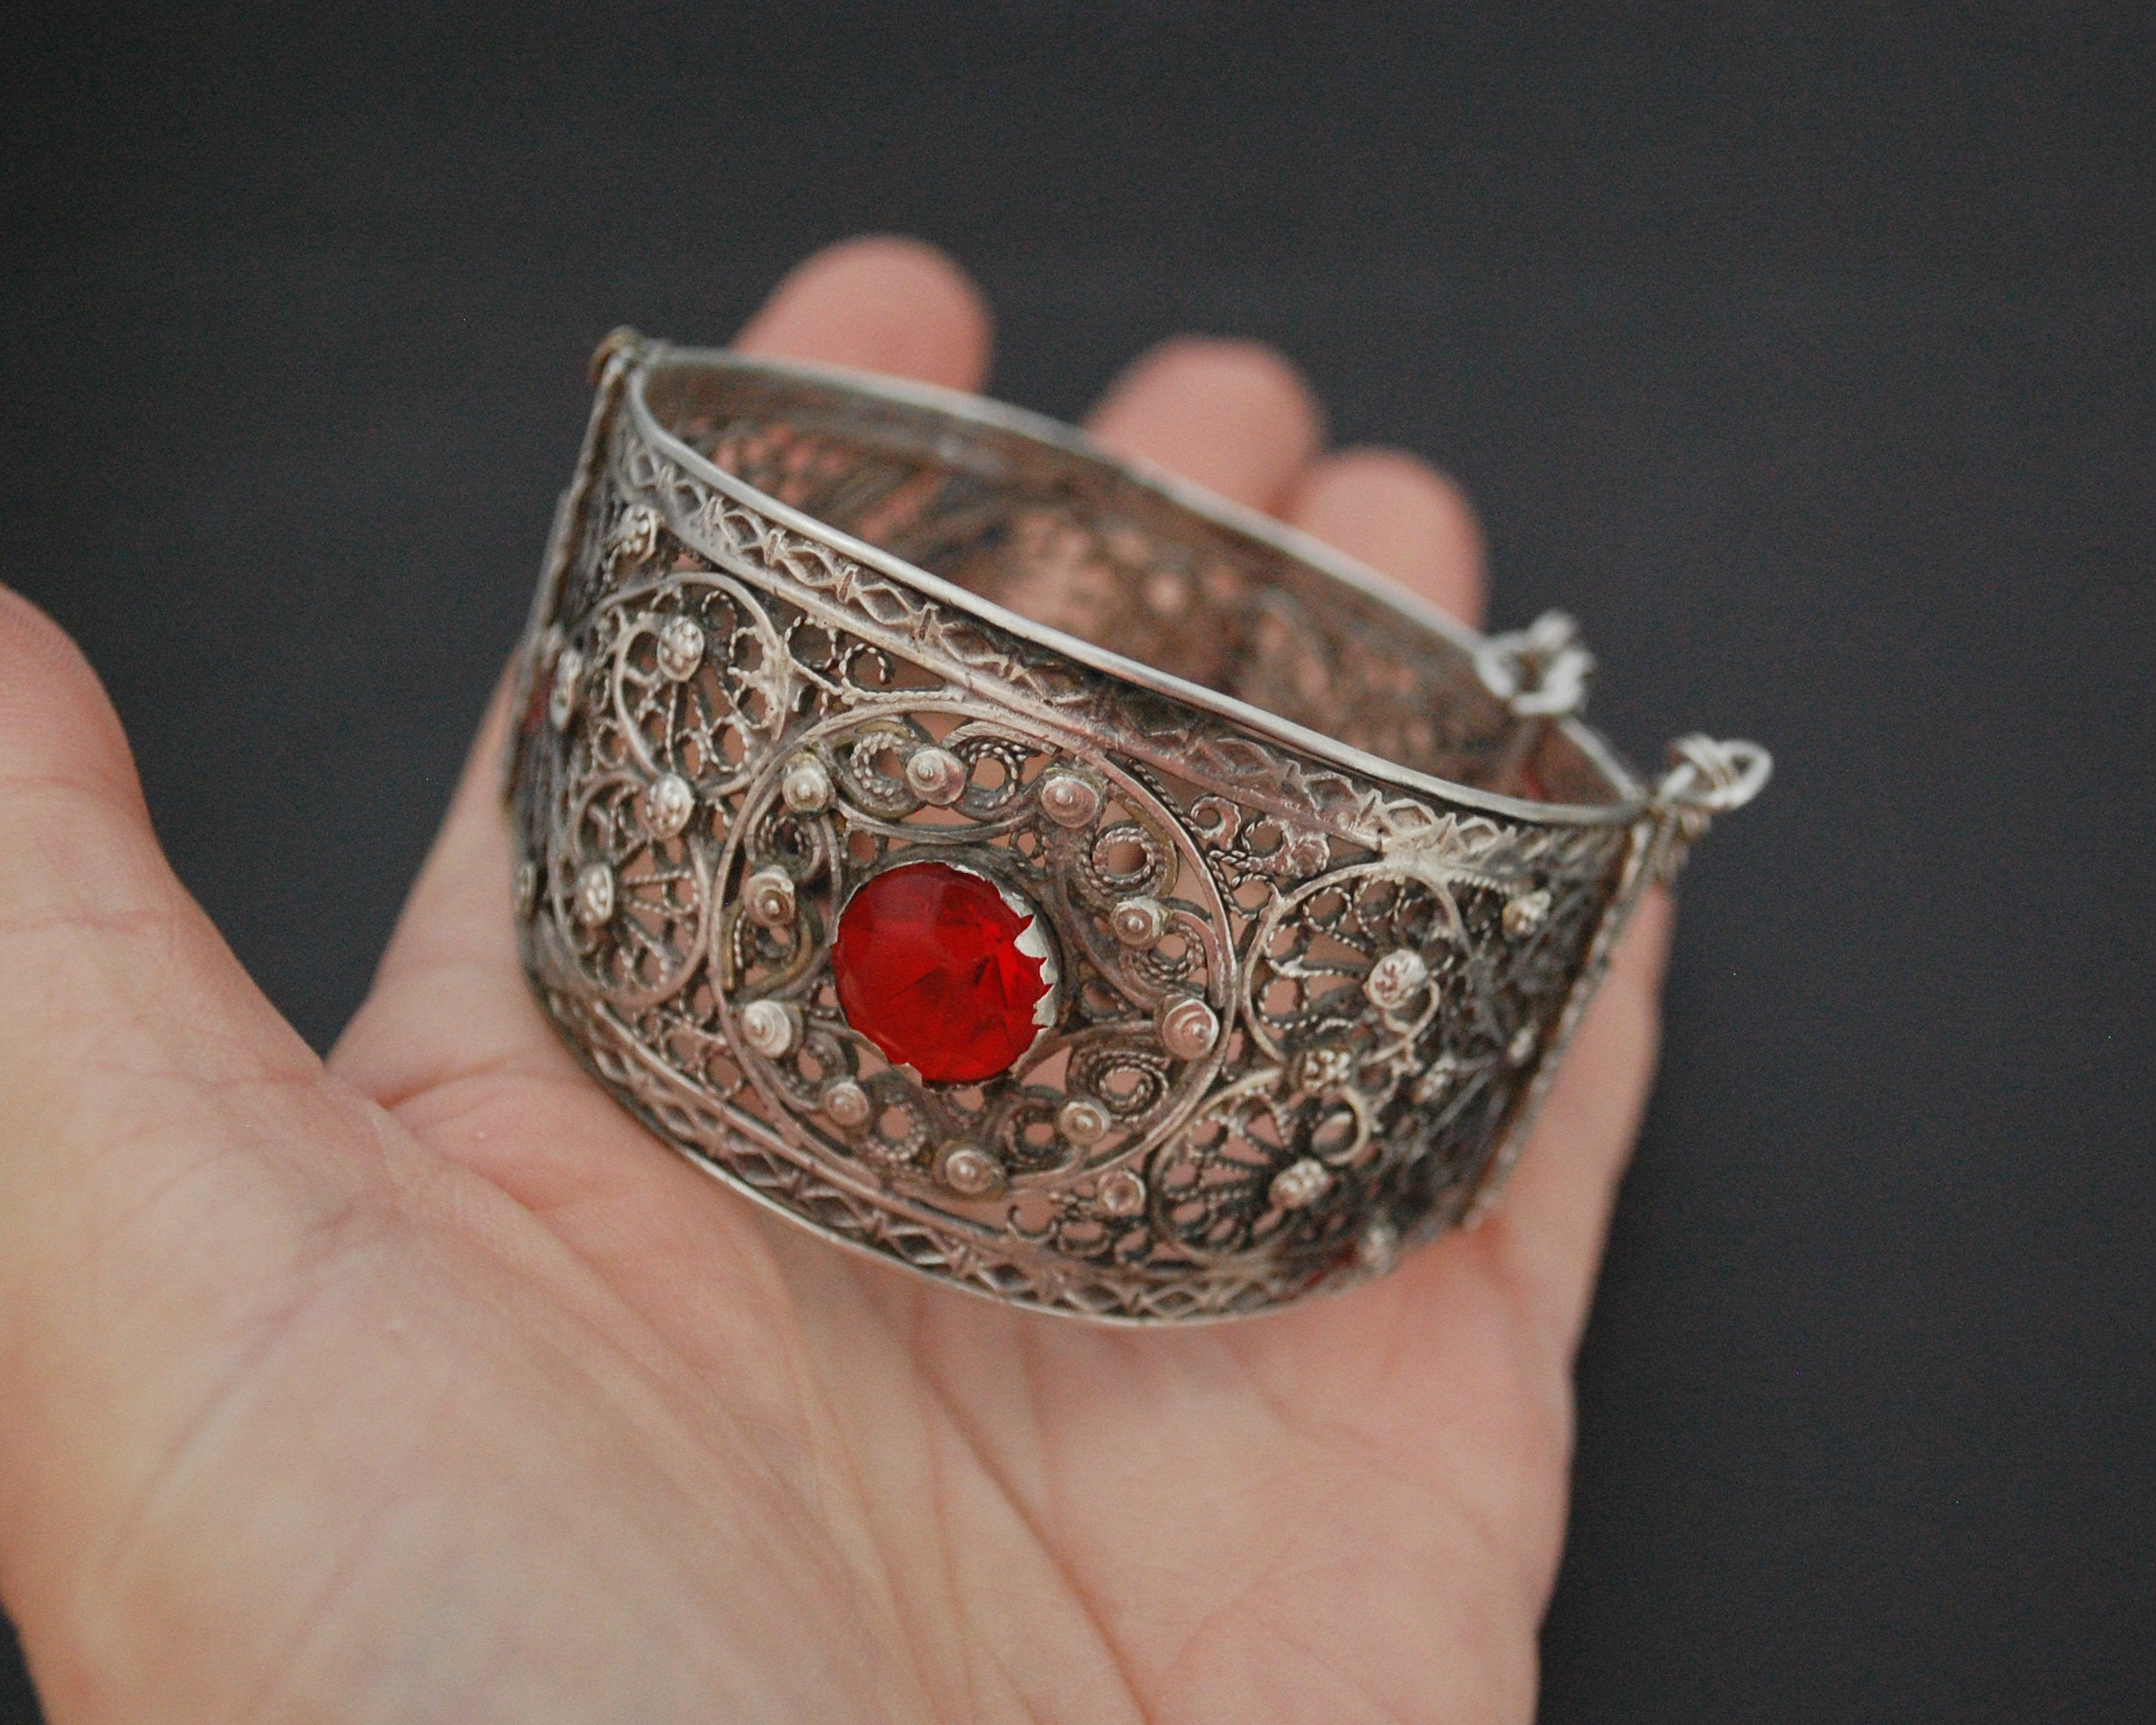 Afghani Filigree Bracelet with Red Glass